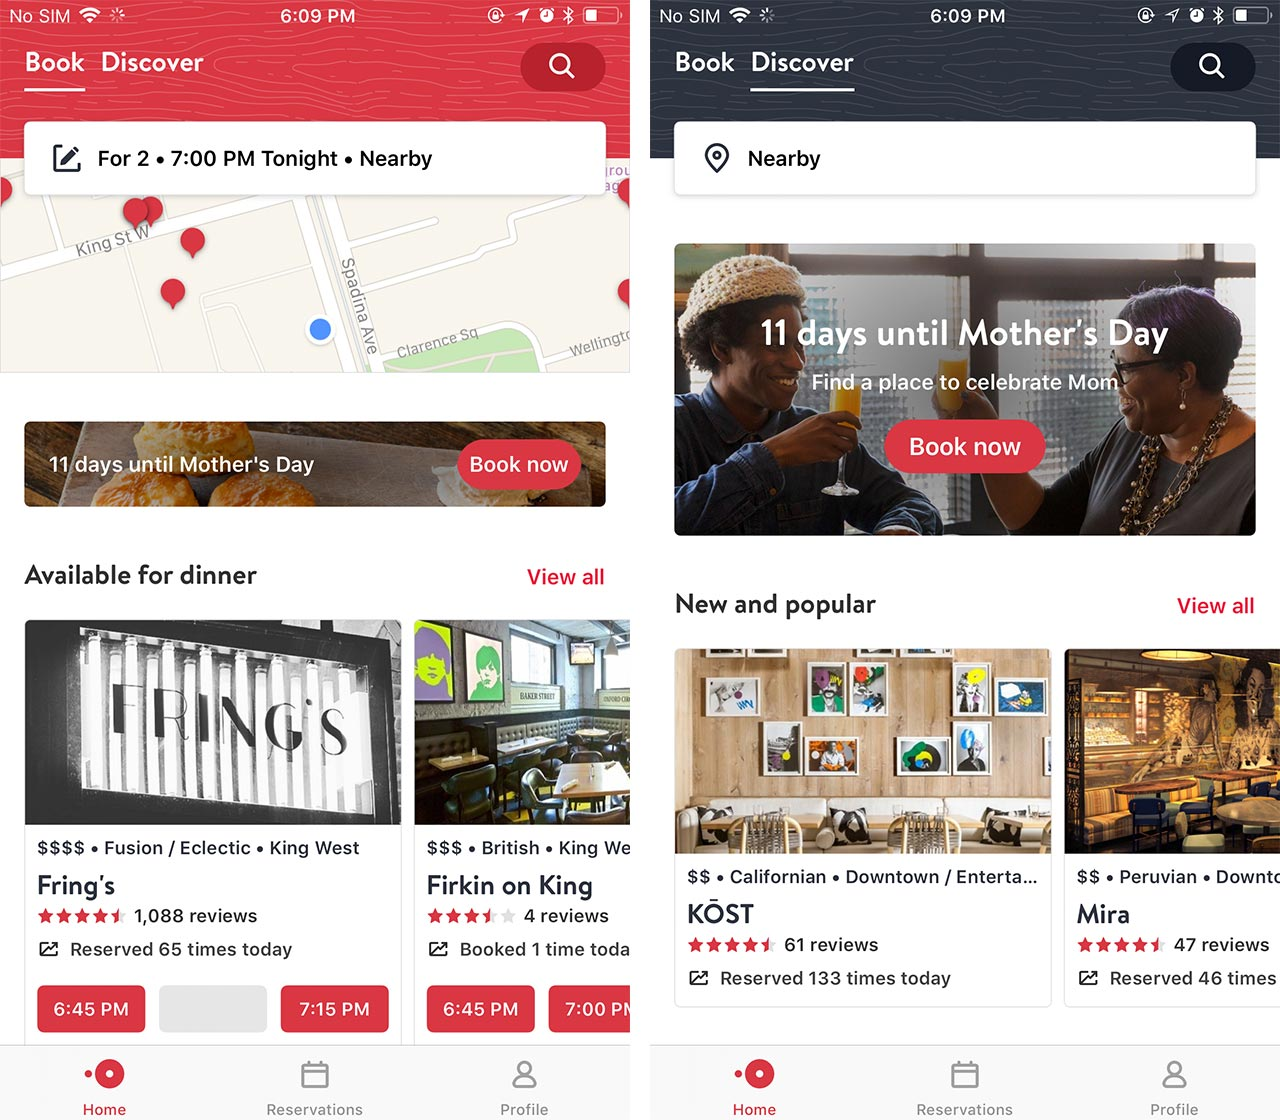 A comparison of the Book and the Discover opentable tabs